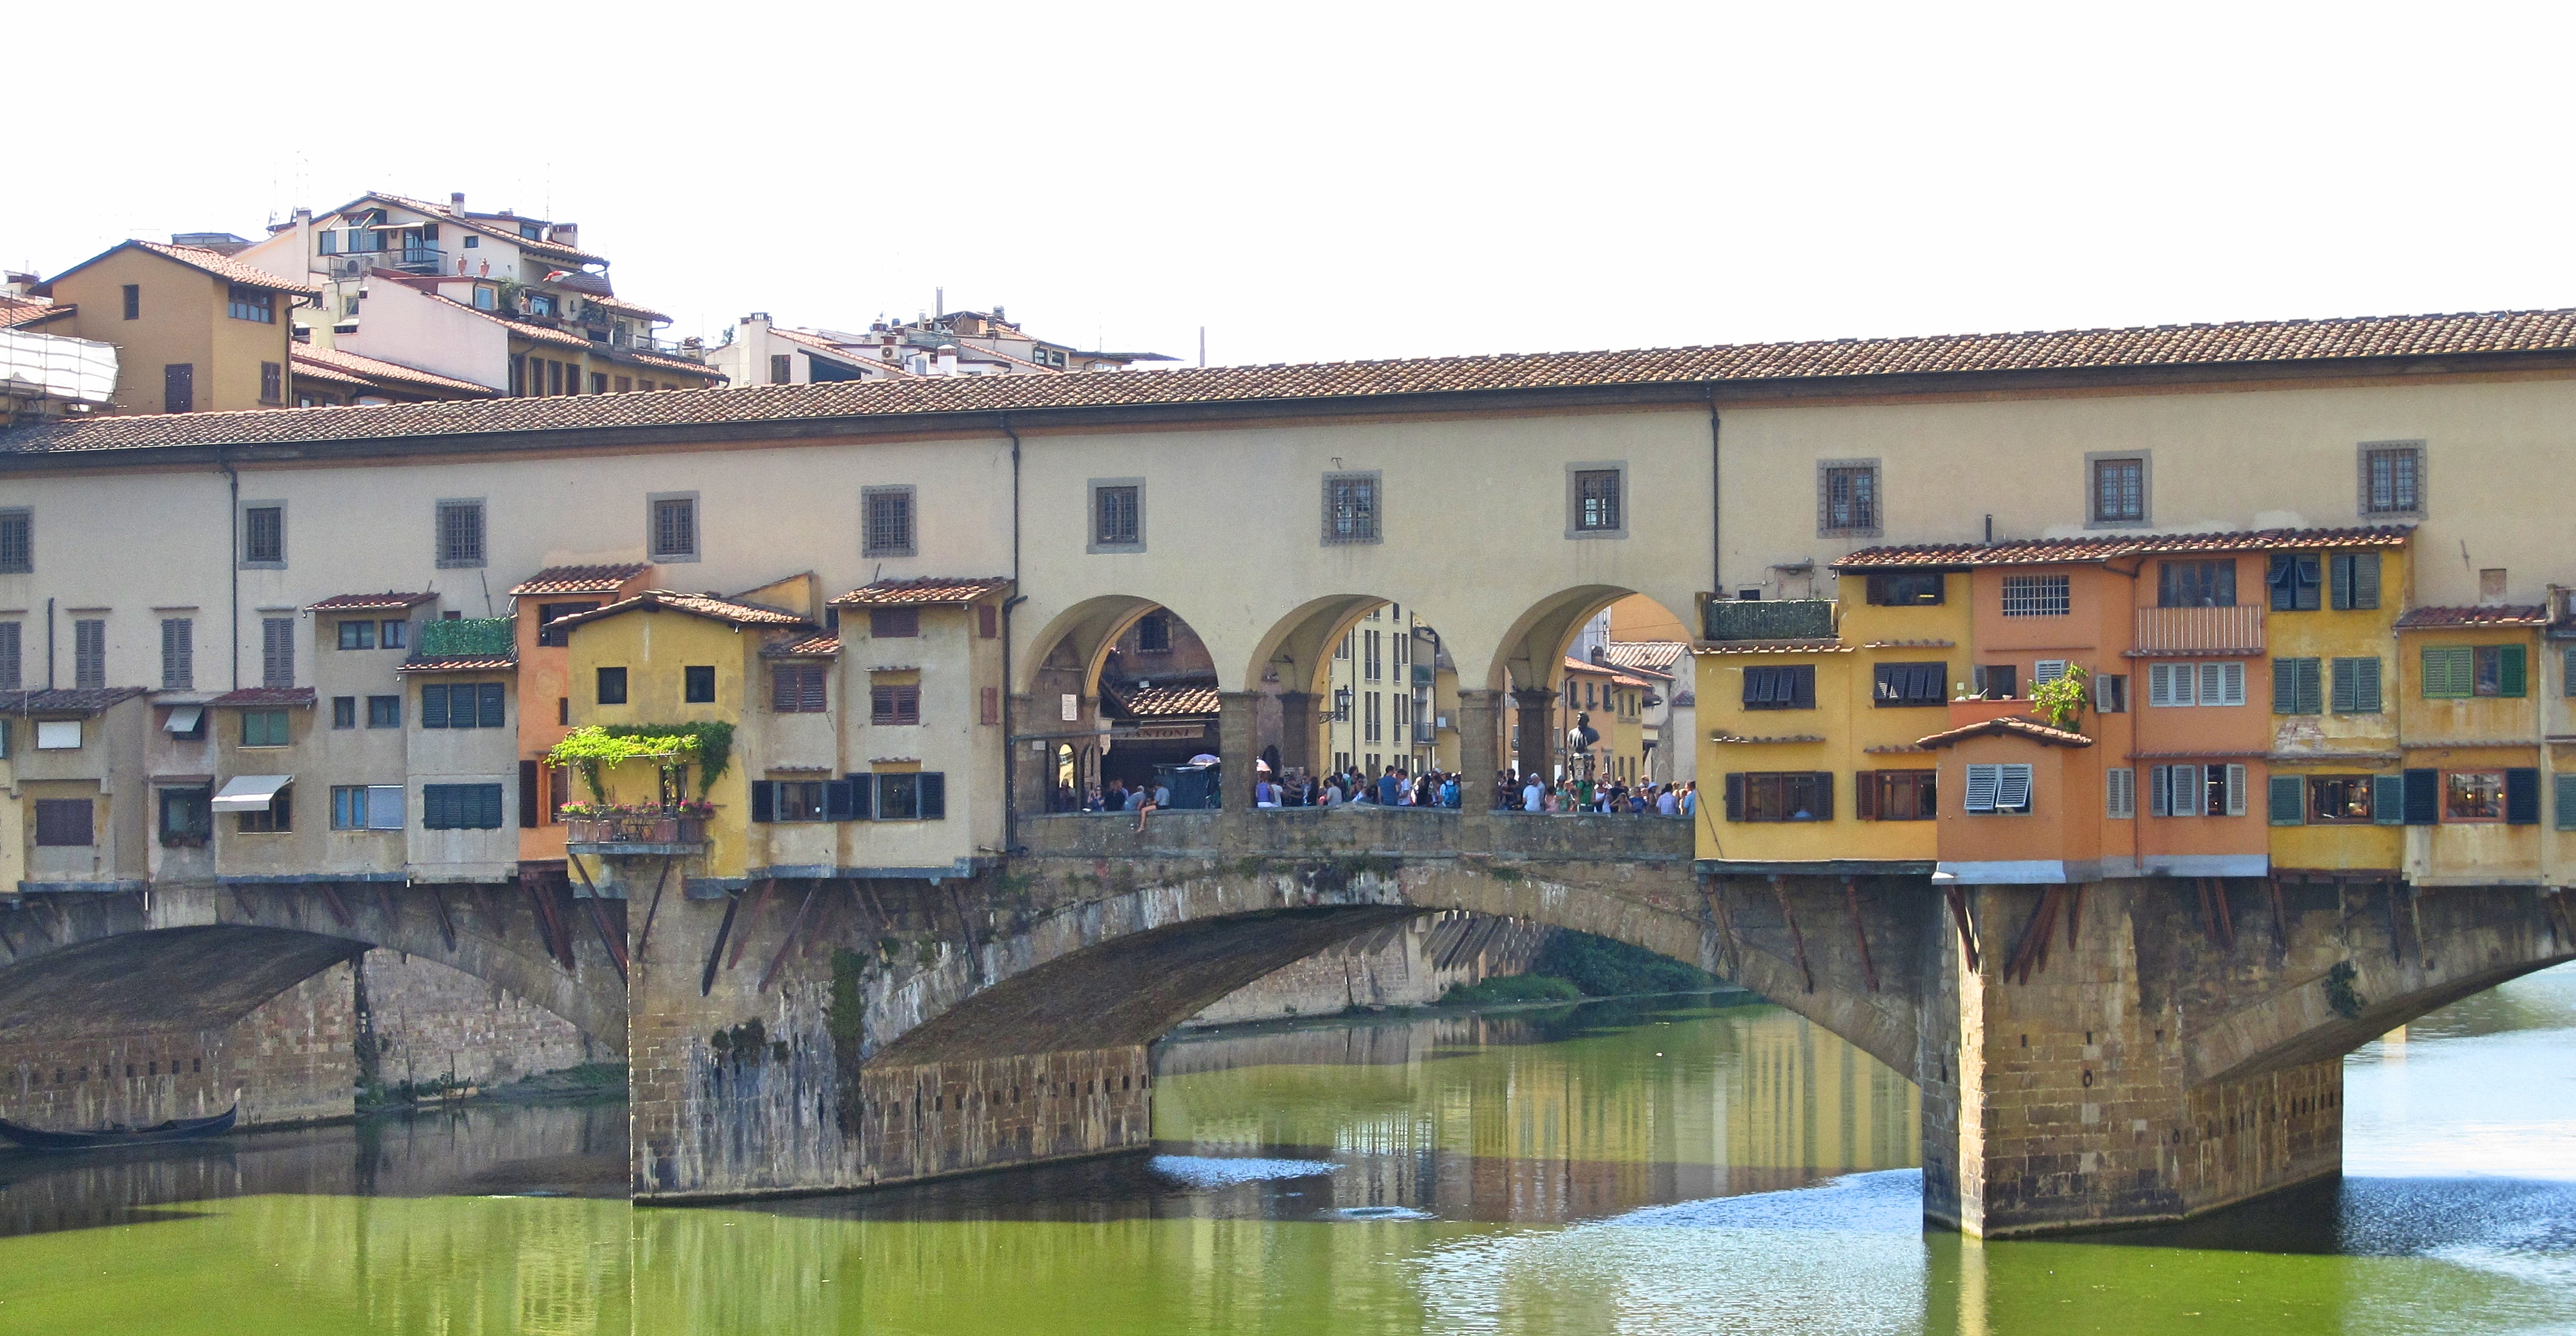 The Ponte Vecchio that stretches over the Arno river still has little shops on it.